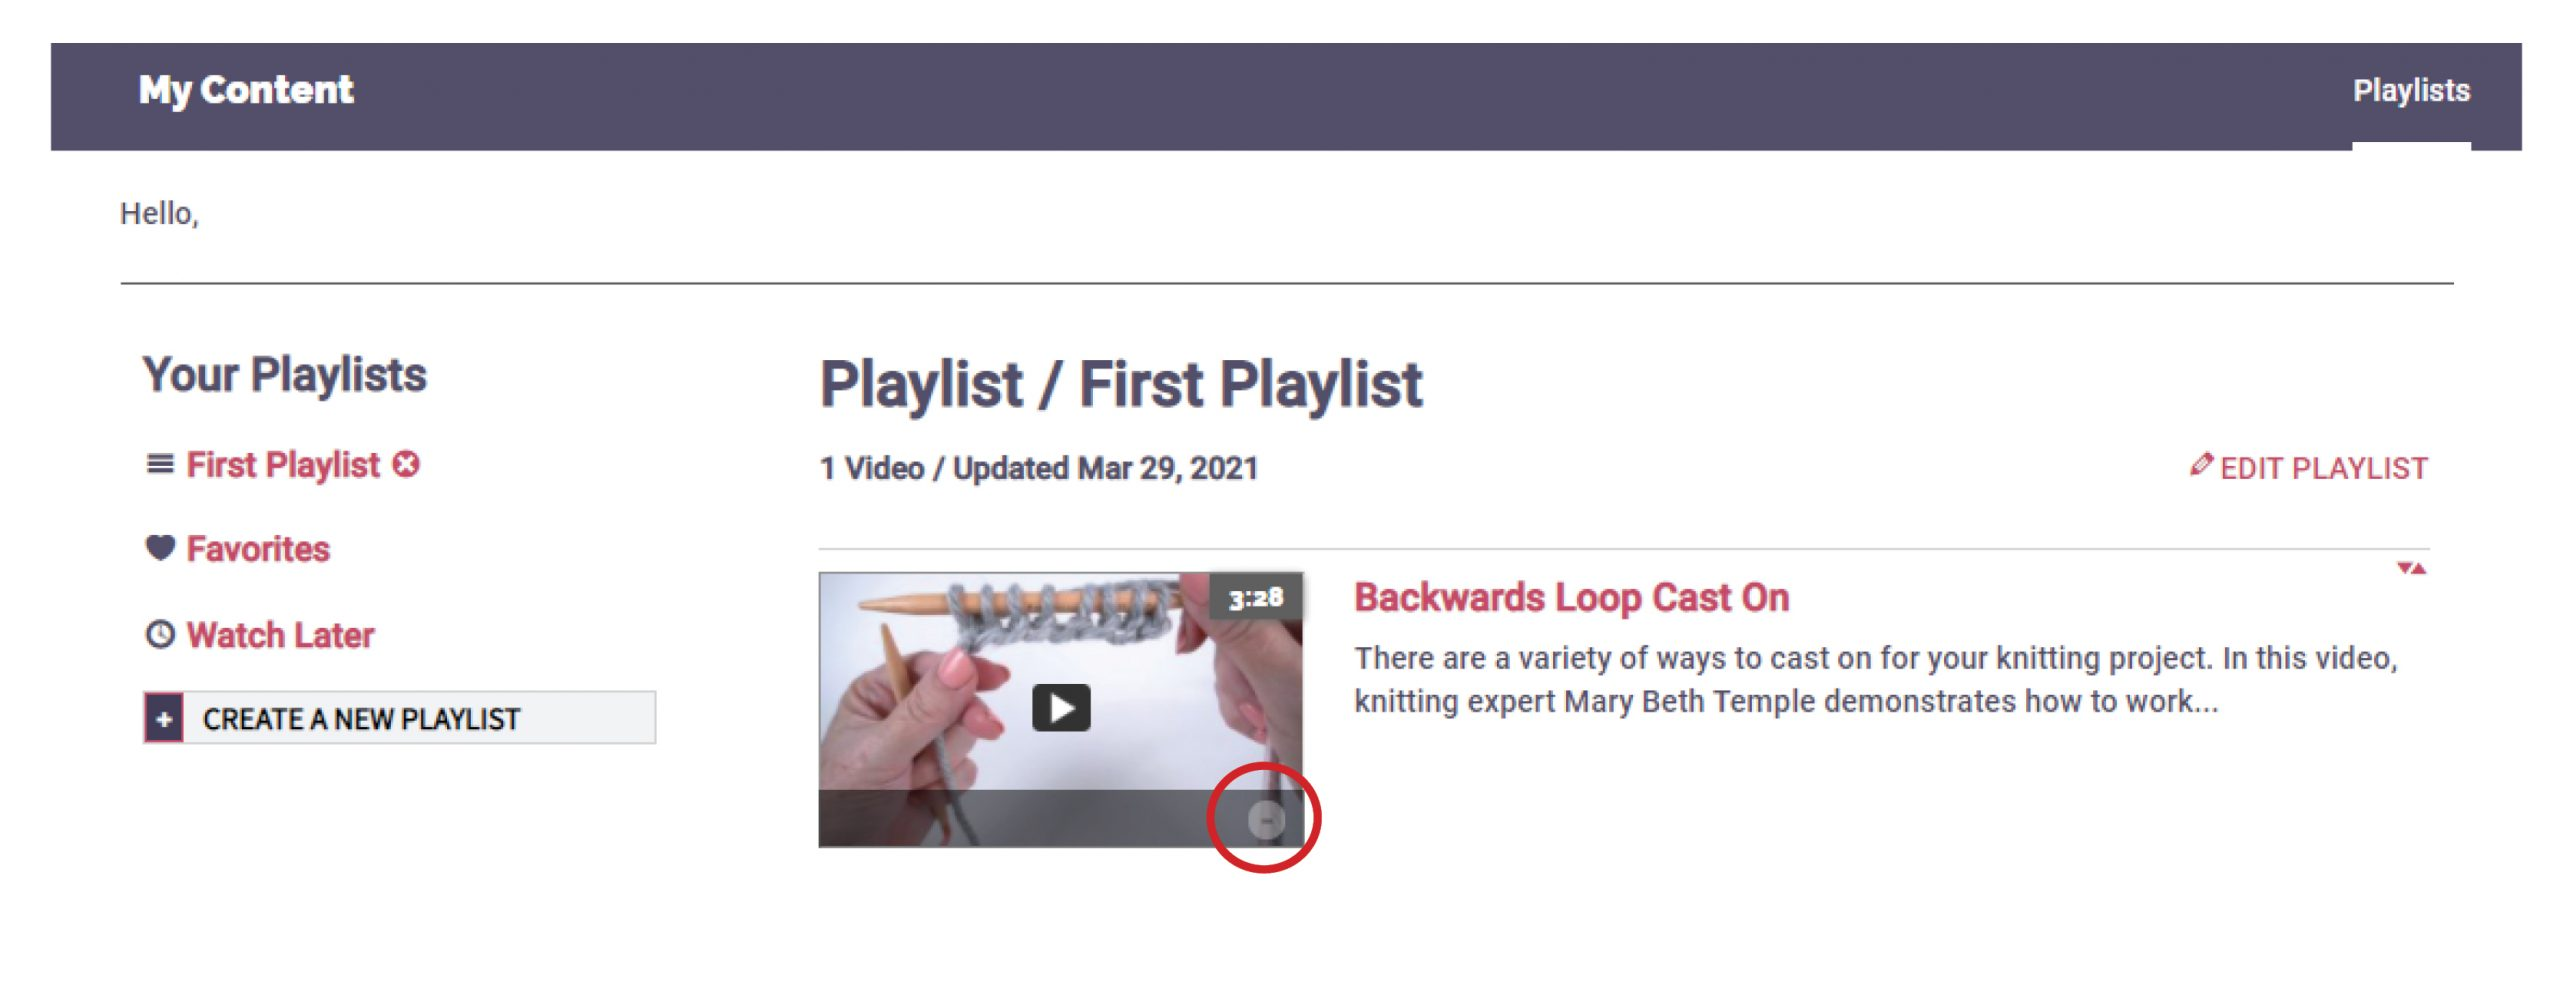 Remove a Video from a Playlist